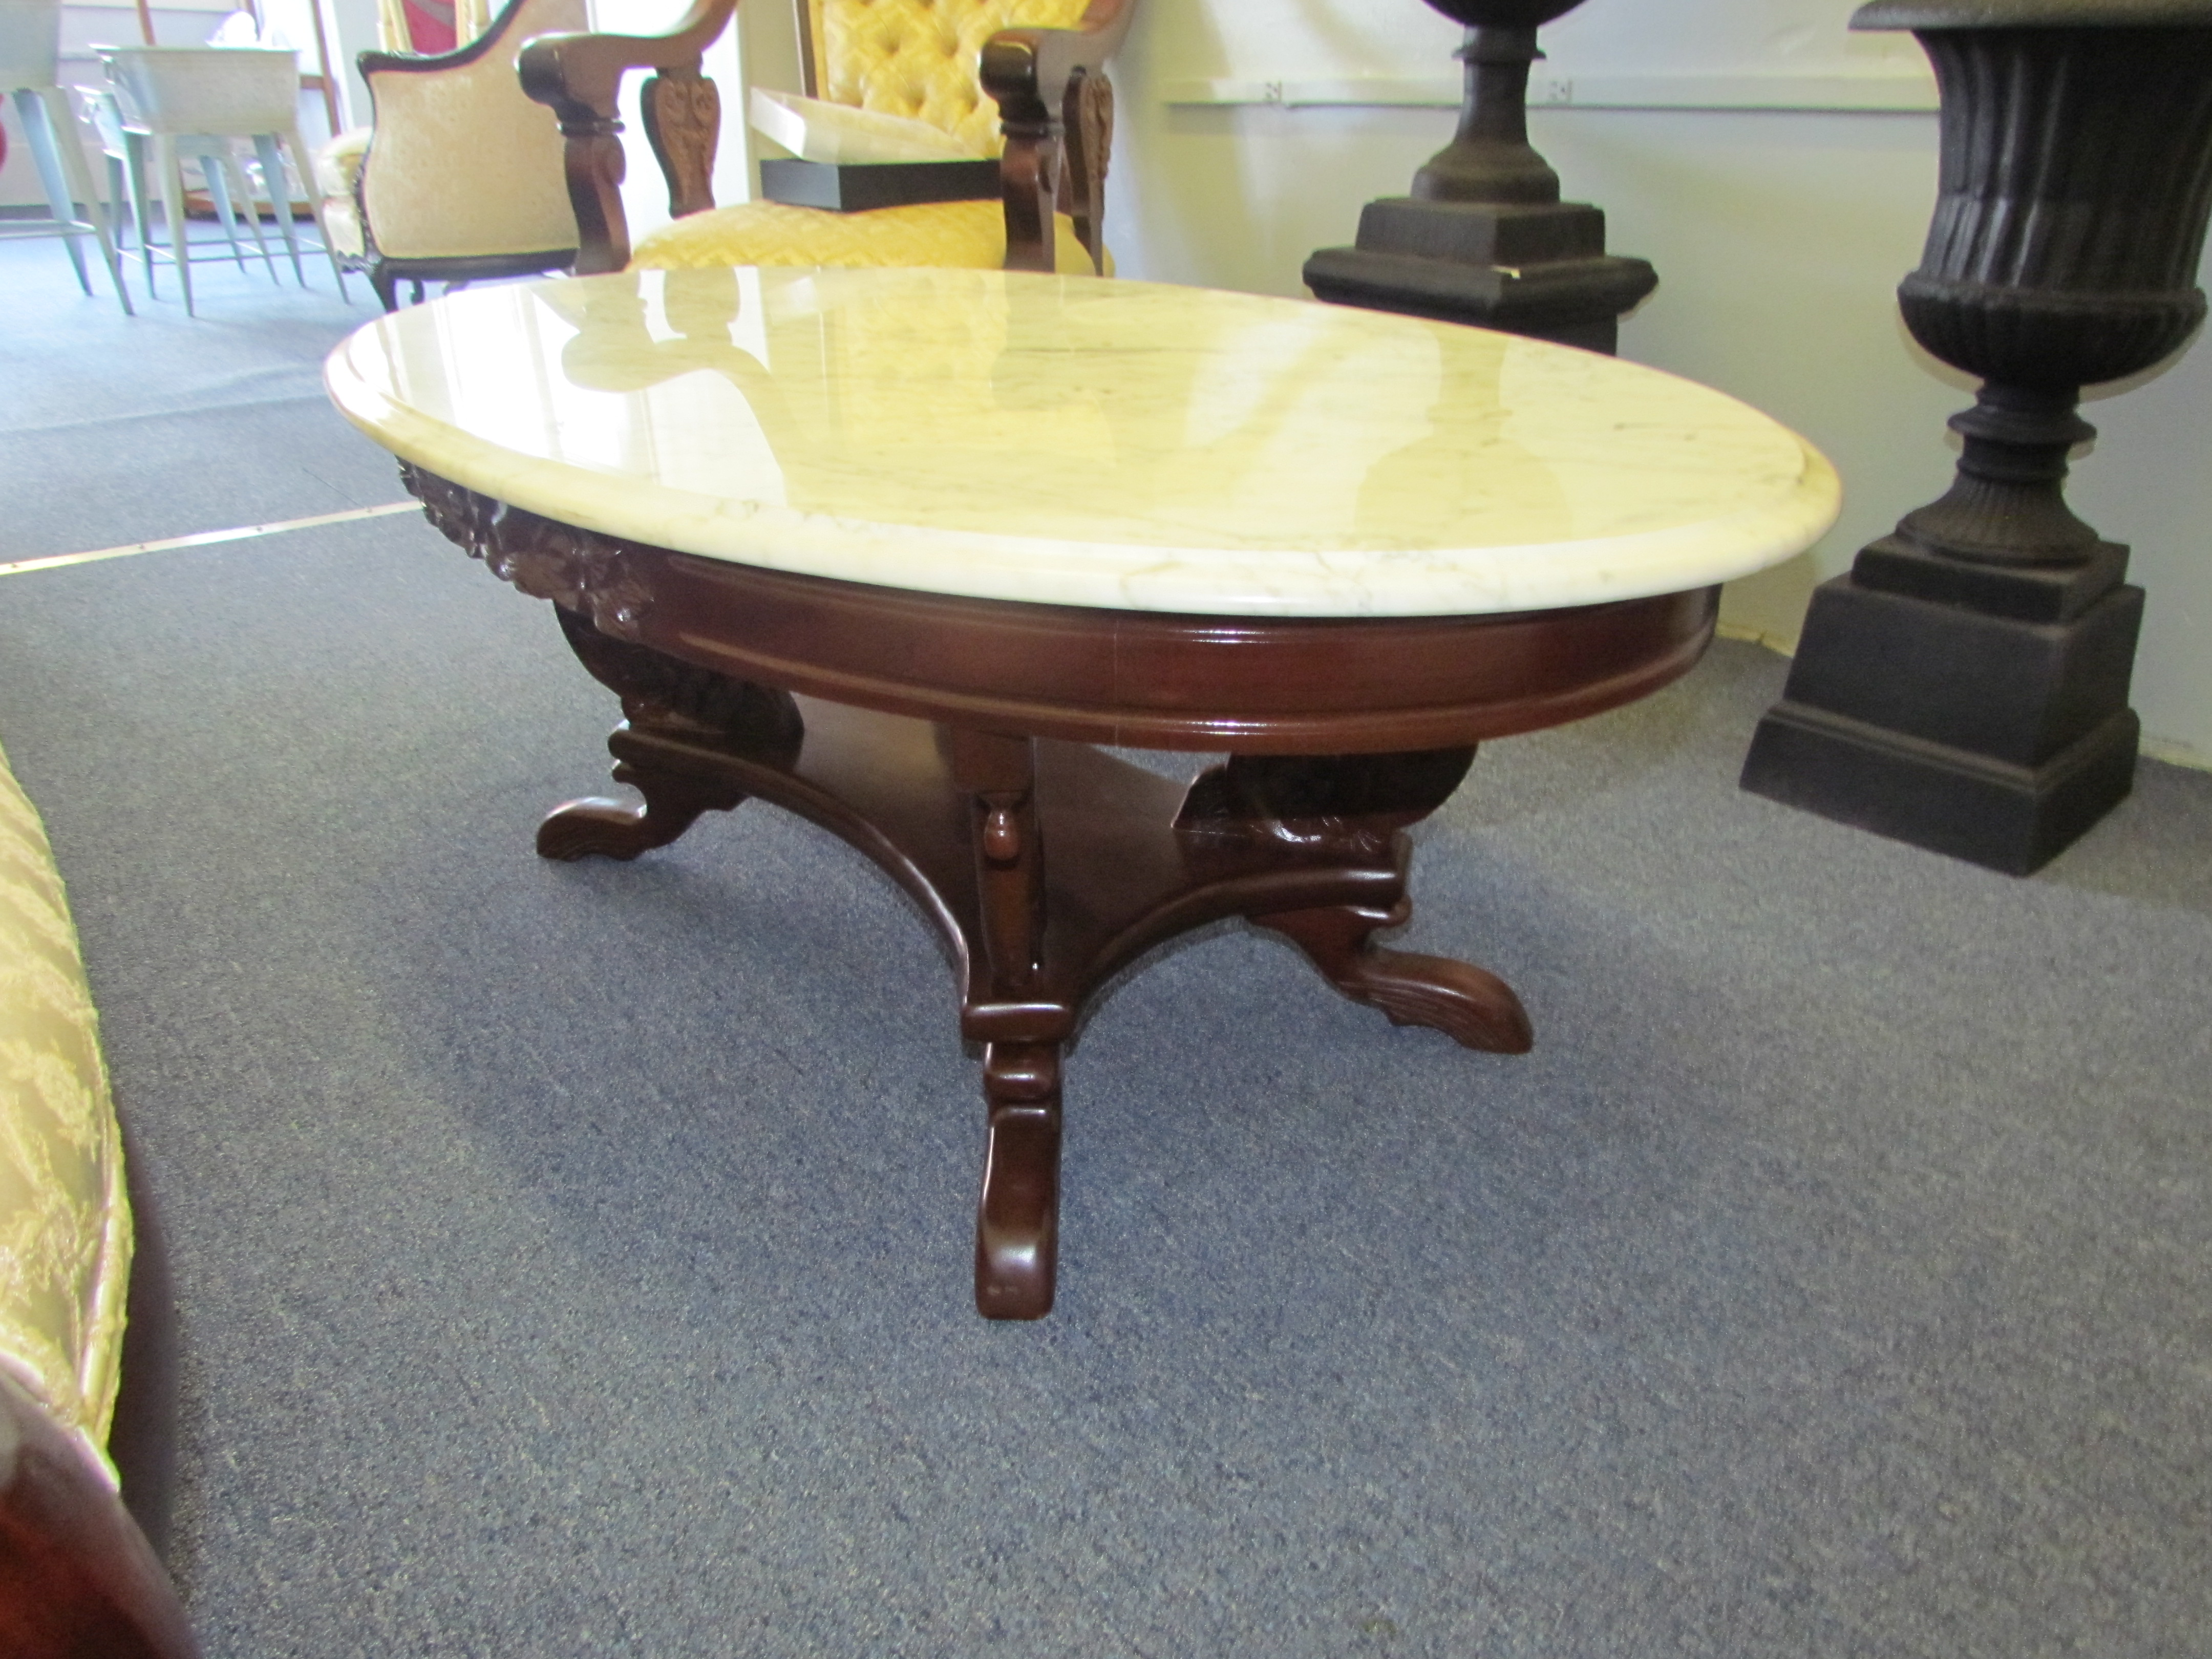 Vintage Marble Top Coffee Table $40 / Day